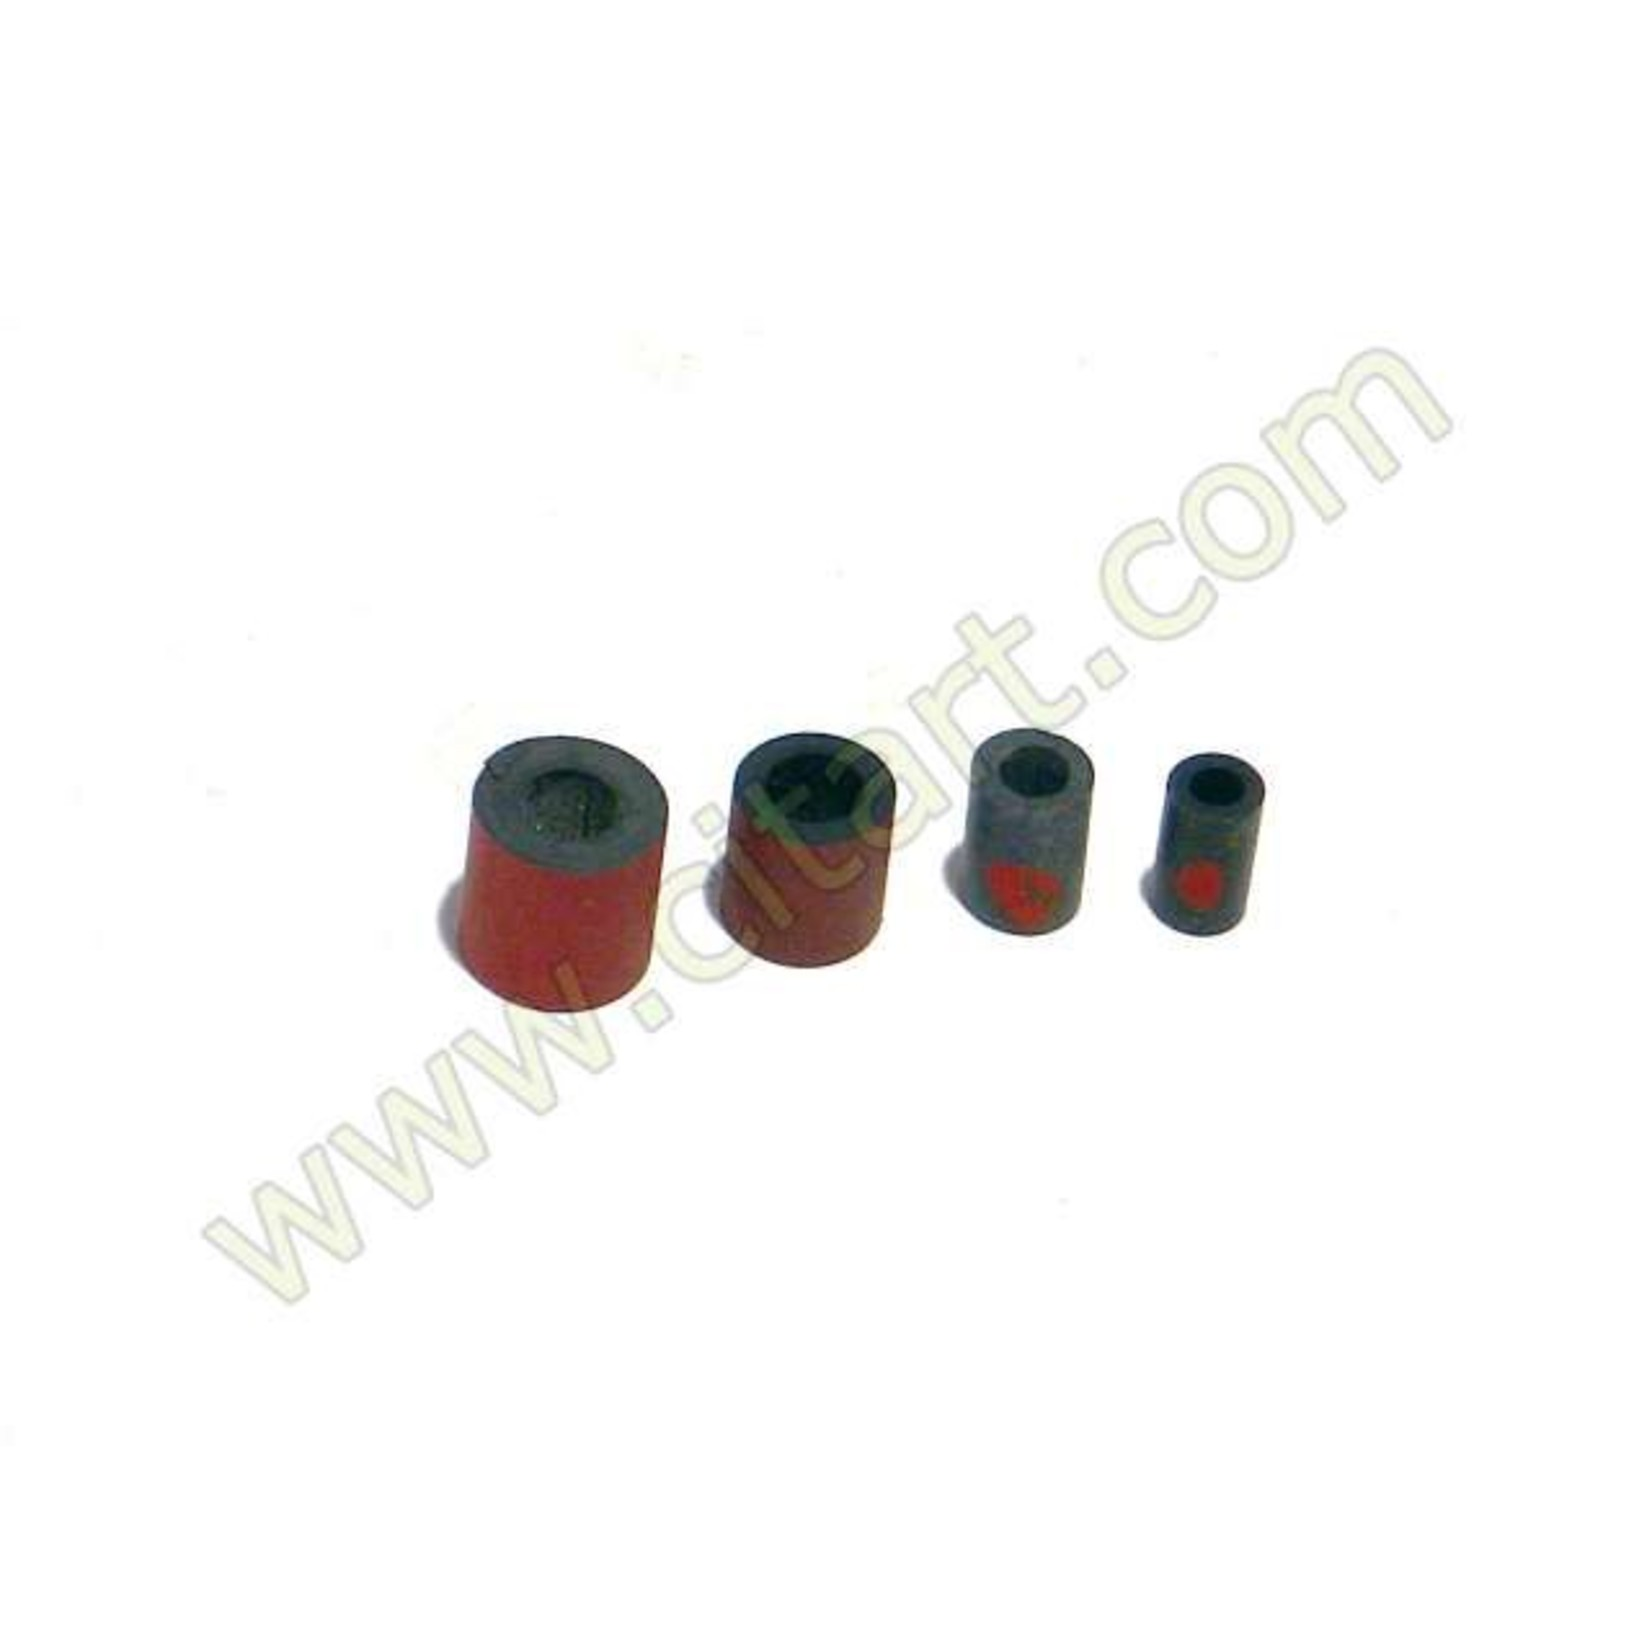 Rubber joint hydraulic pipe LHS 4,5mm Nr Org: 21589009